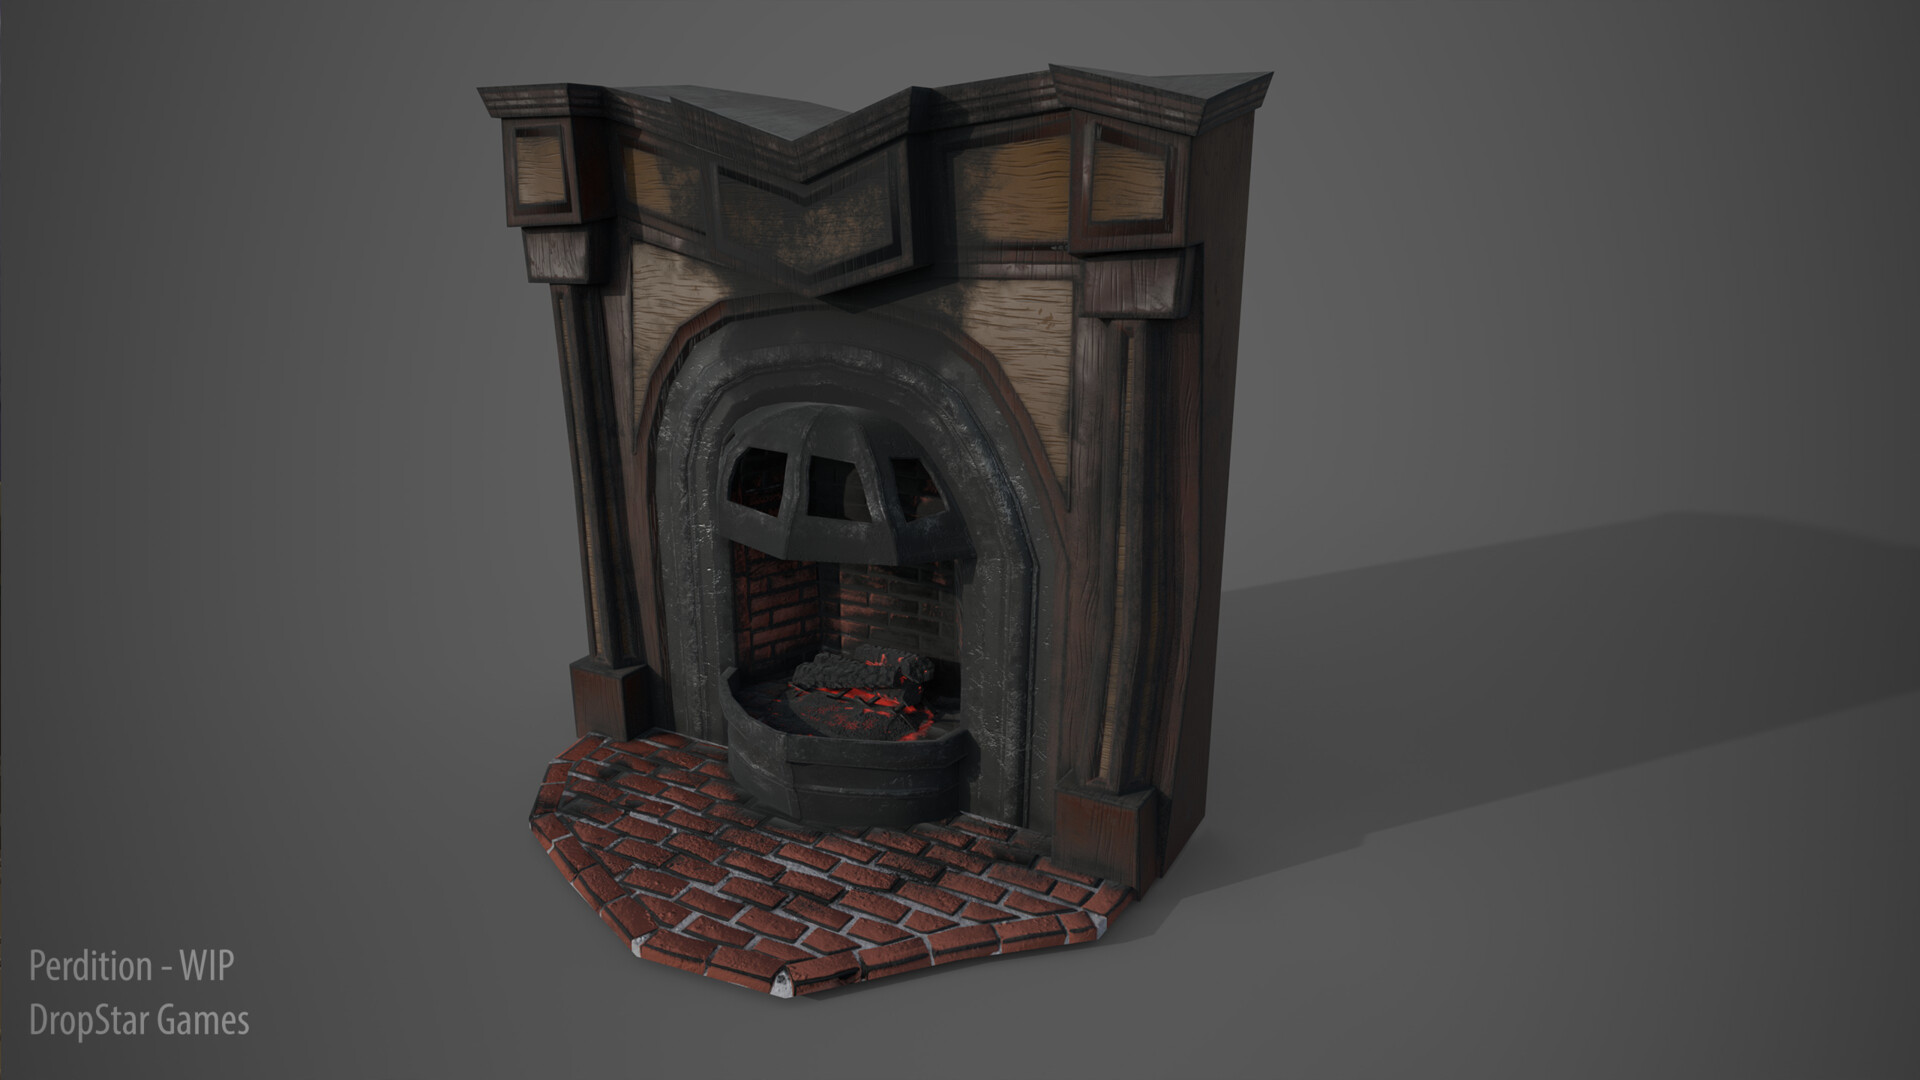 Fireplace - Rendered in Iray